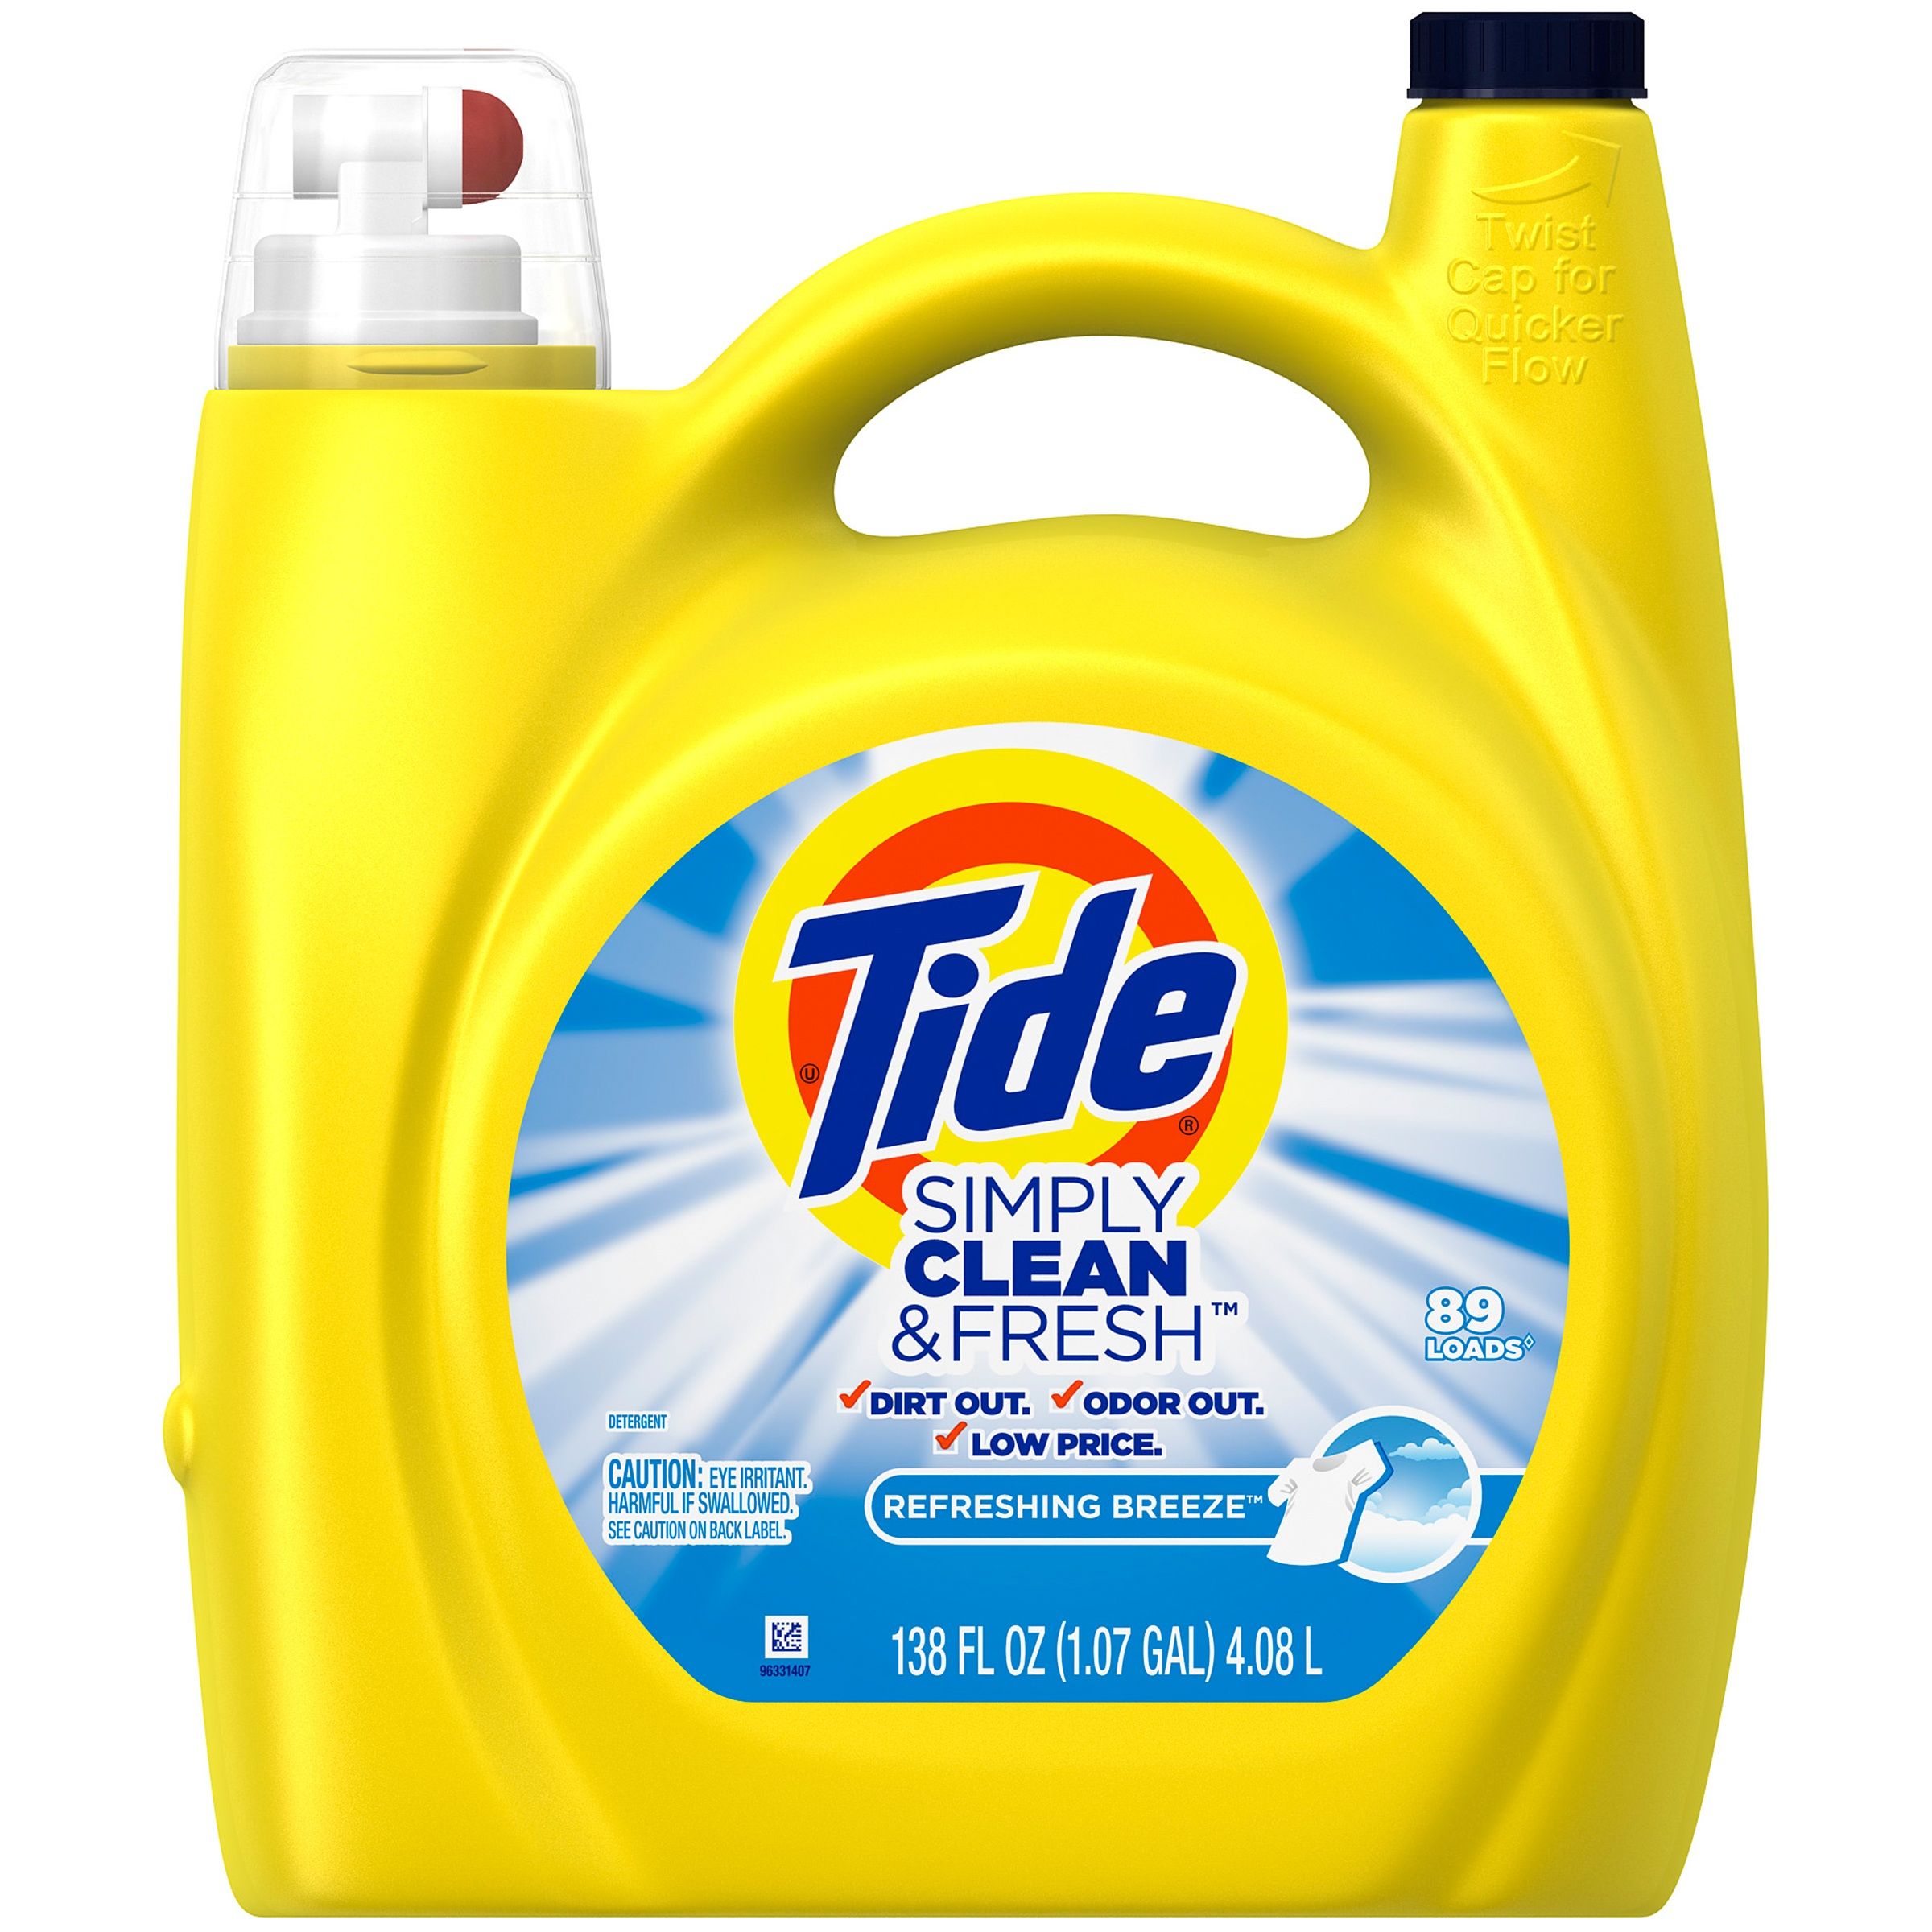 Tide Simply Clean & Fresh HE Liquid Laundry Detergent, Refreshing Breeze Scent, 89 Loads, 138 Fl Oz